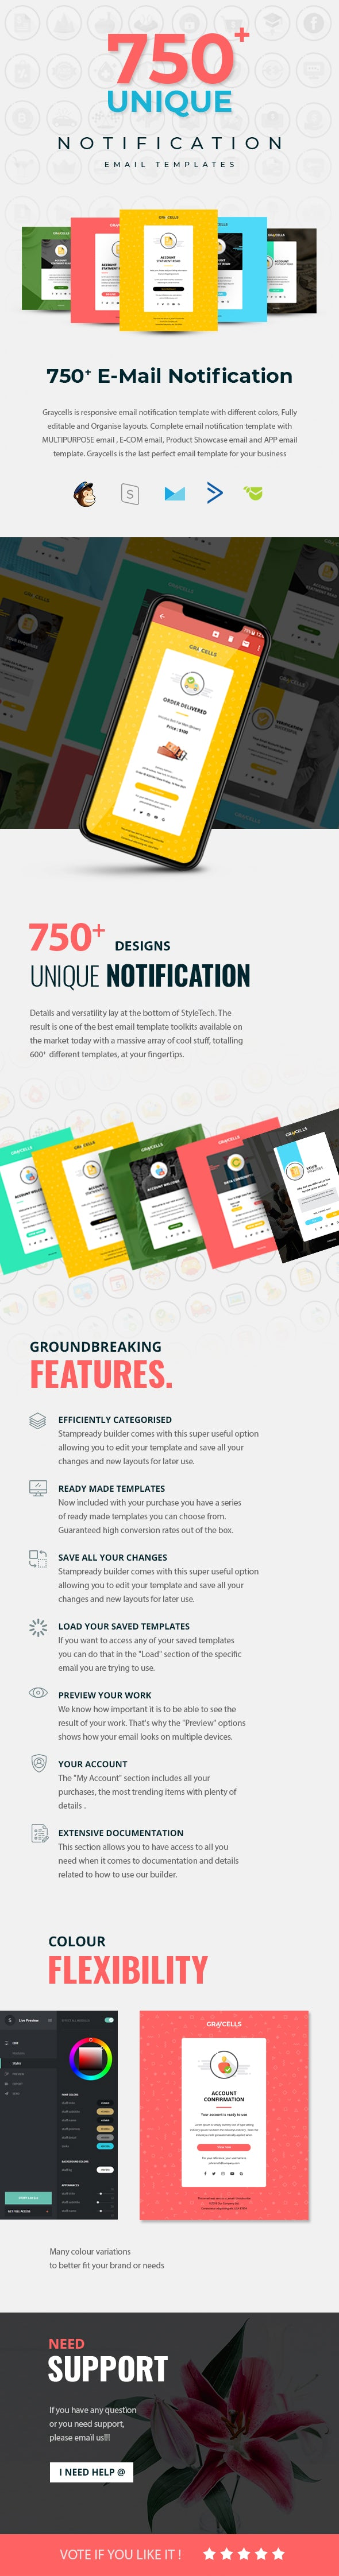 750 Responsive Email Notification Template